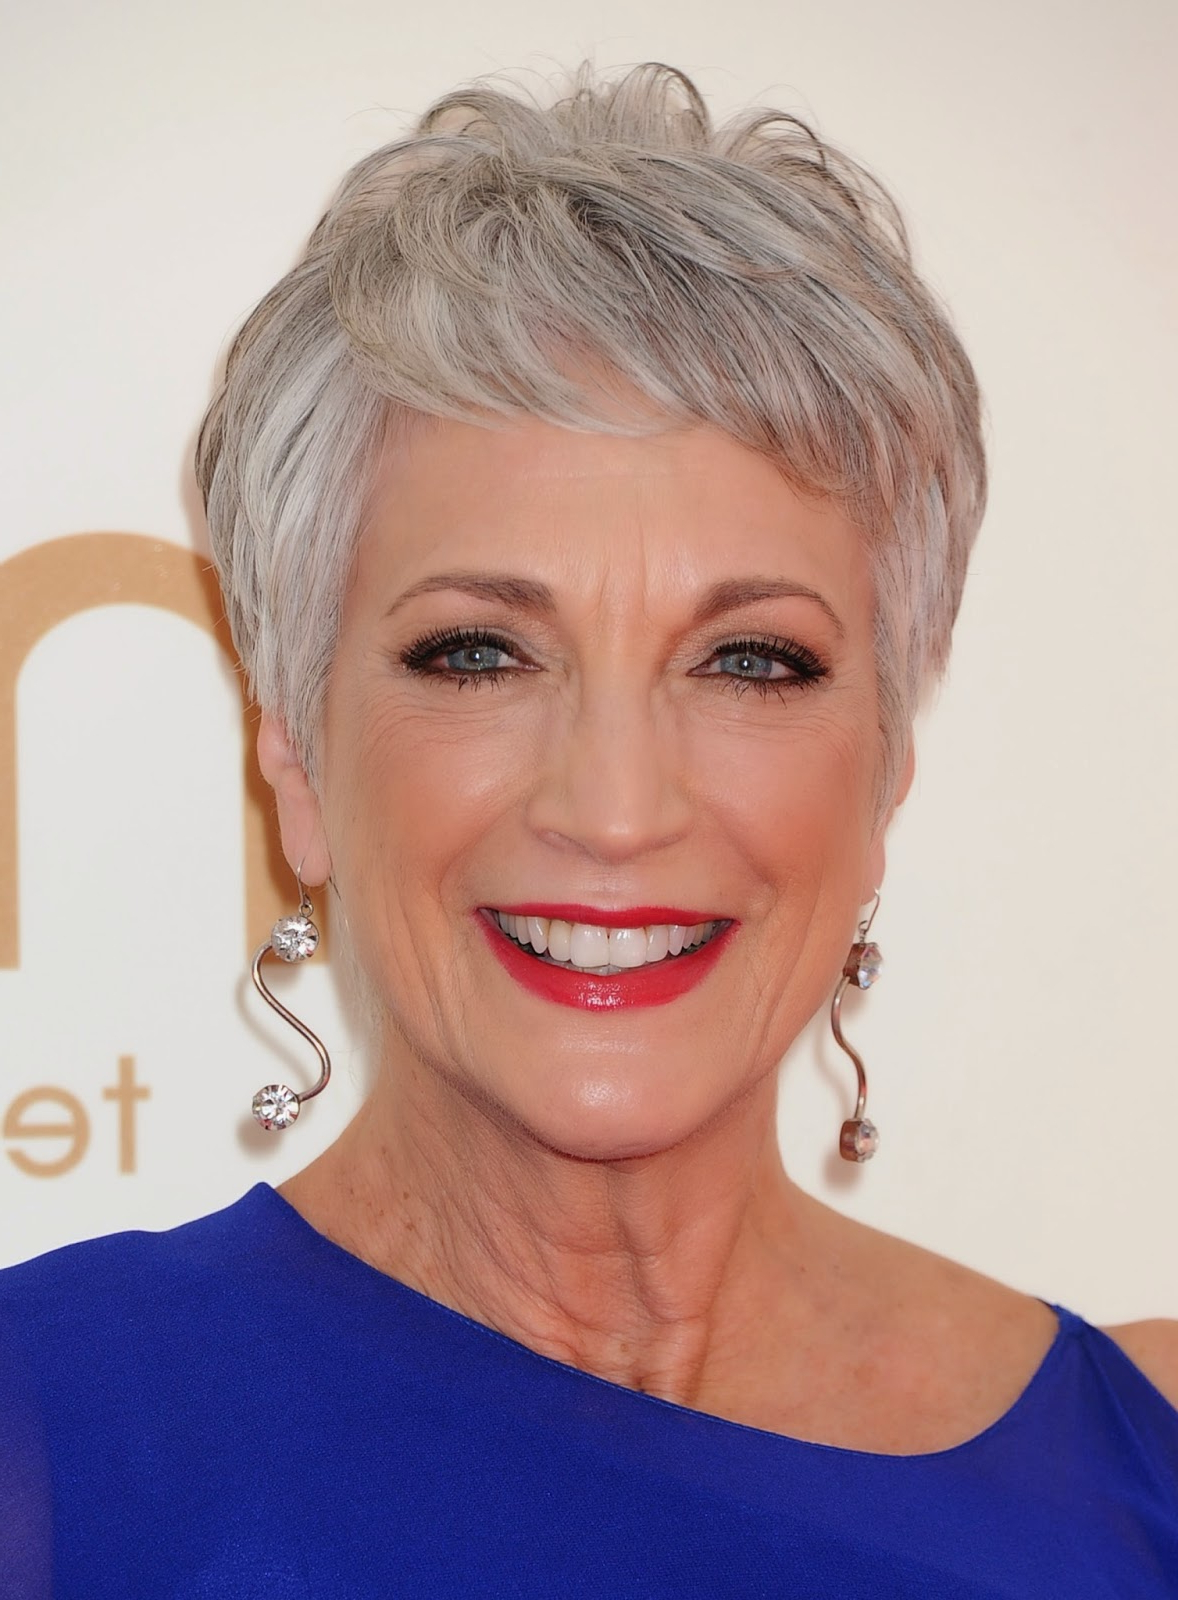 Over 50S Hairstyles For Short Hair – Hairstyle For Women & Man In Hairstyles For The Over 50S Short (View 7 of 25)